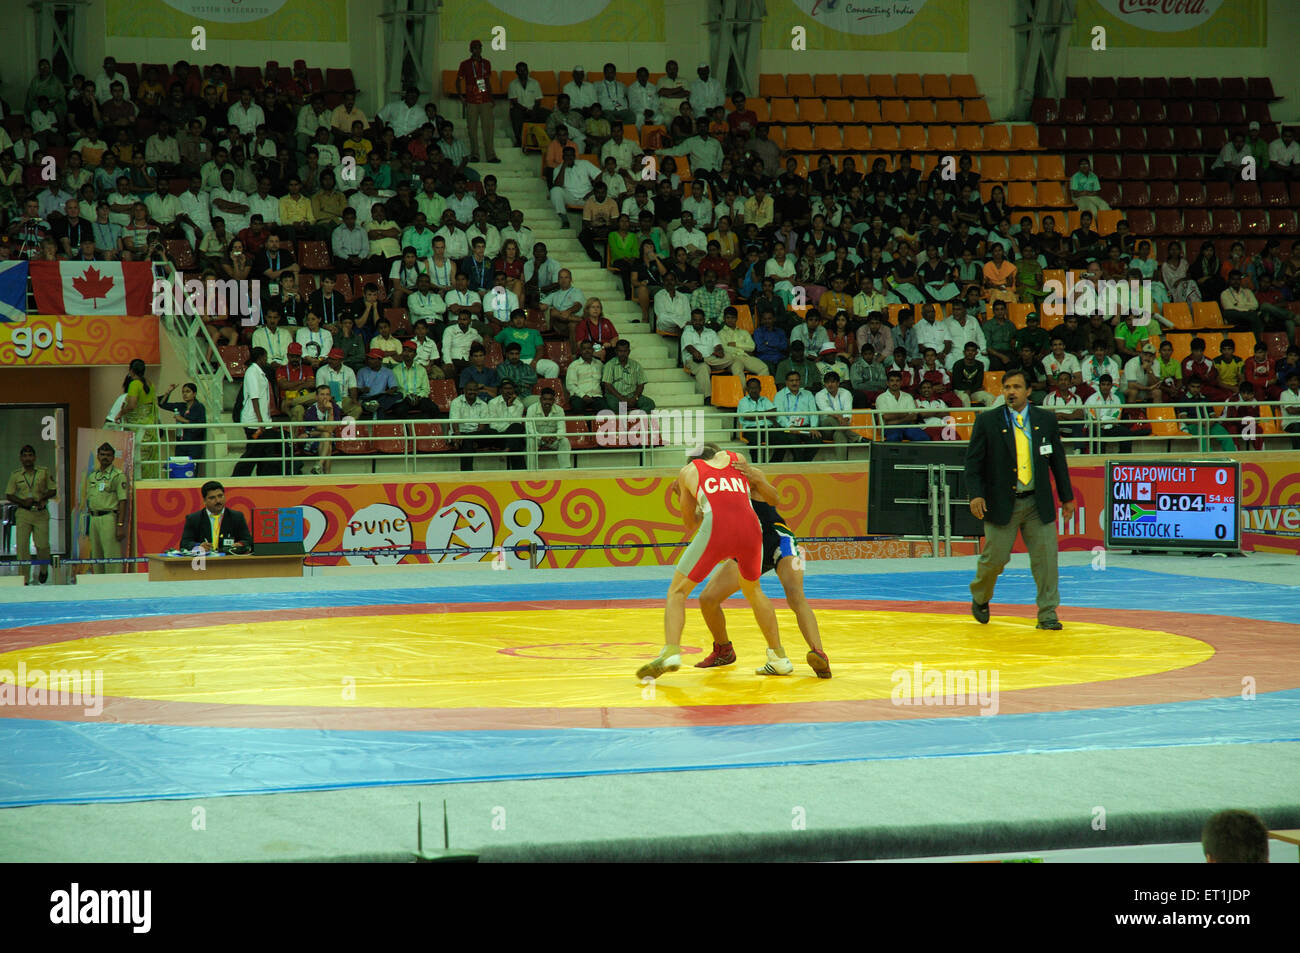 Wrestling match between canadian and south african youth ; Pune ; Maharashtra ; India 15 October 2008 NOMR - Stock Image